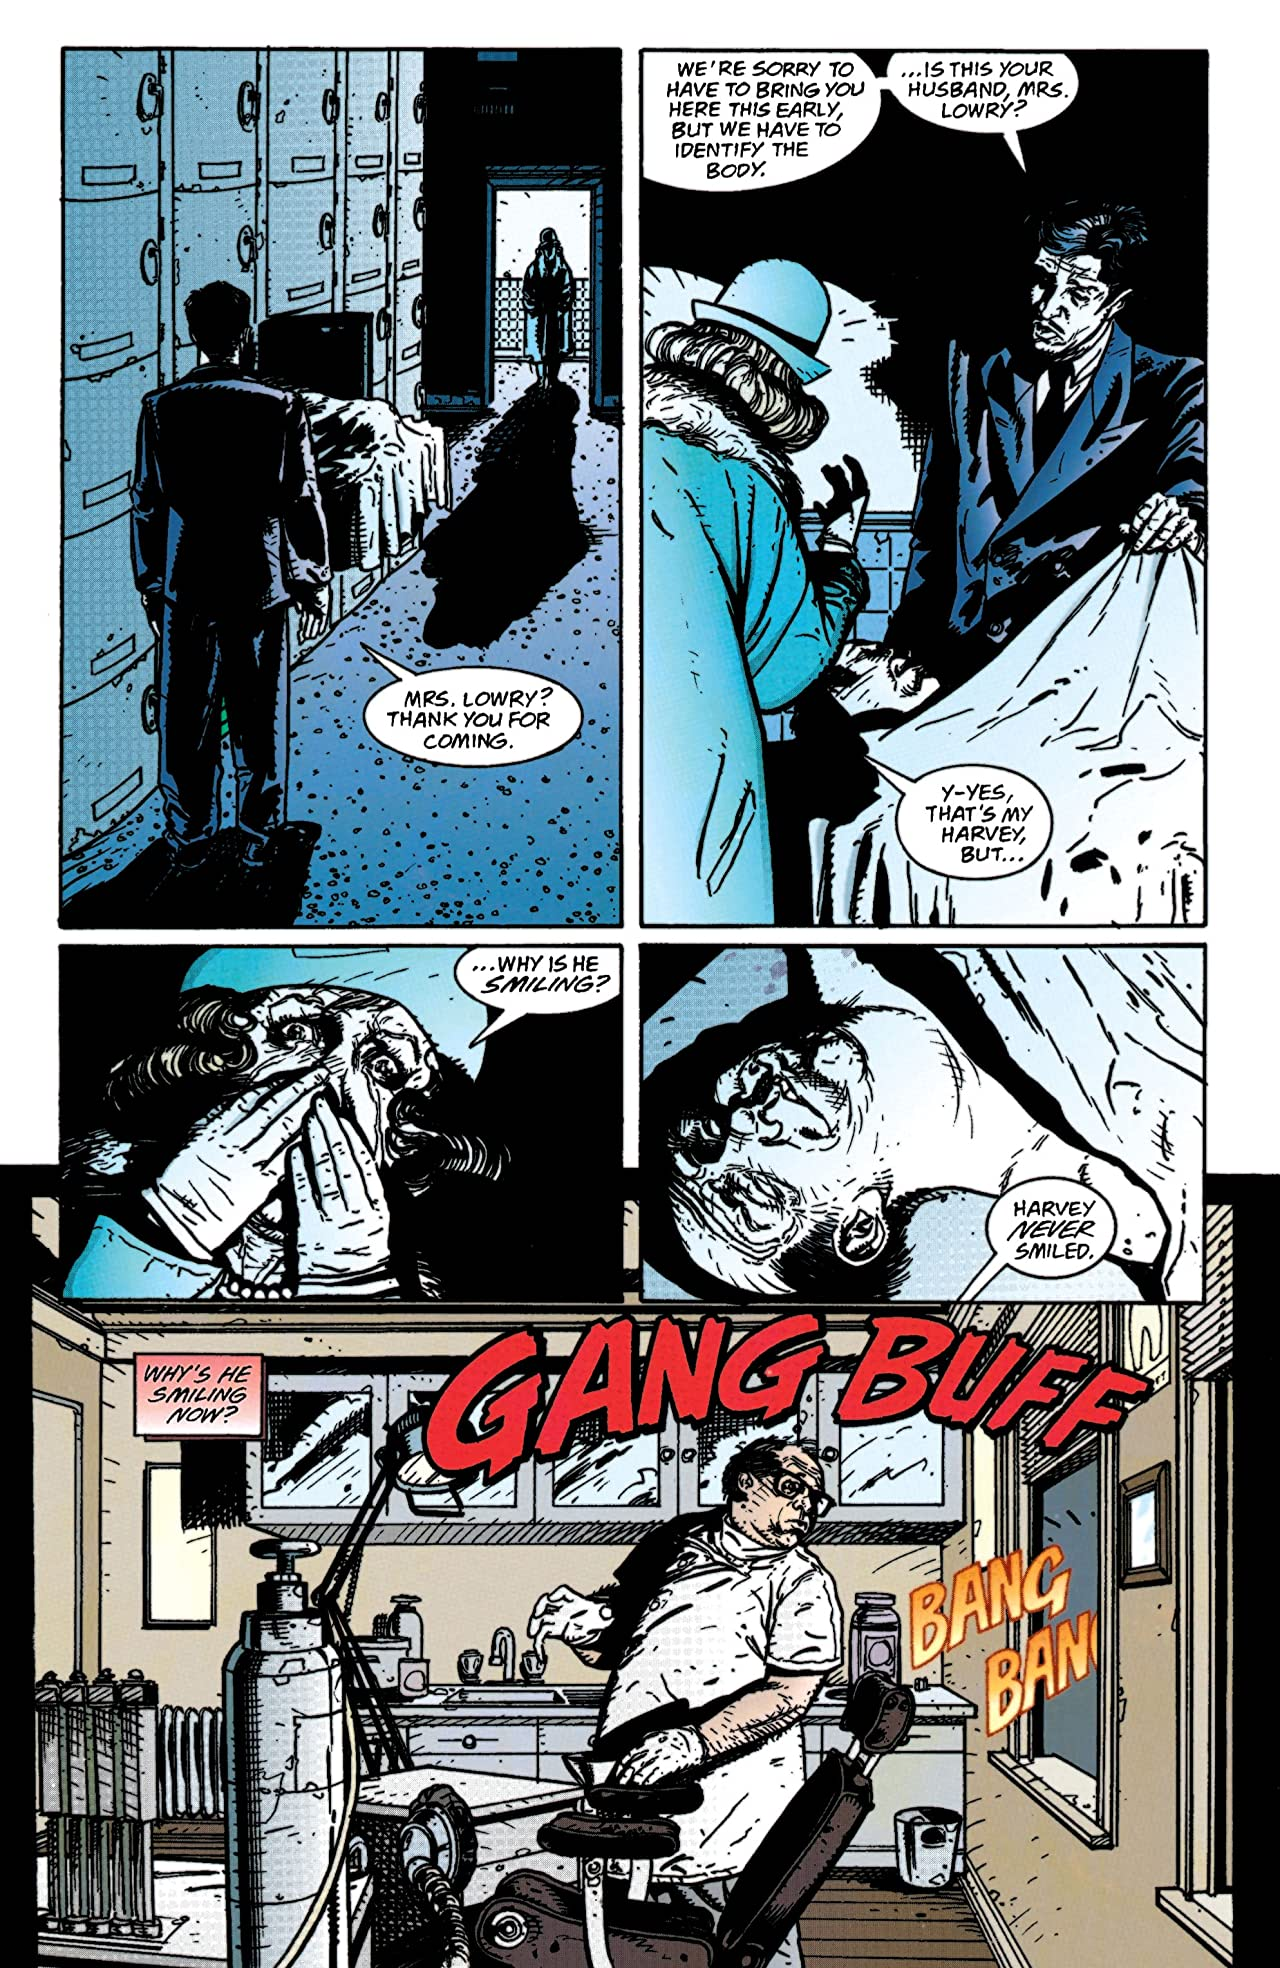 Gangland (1998) #3 (of 4)